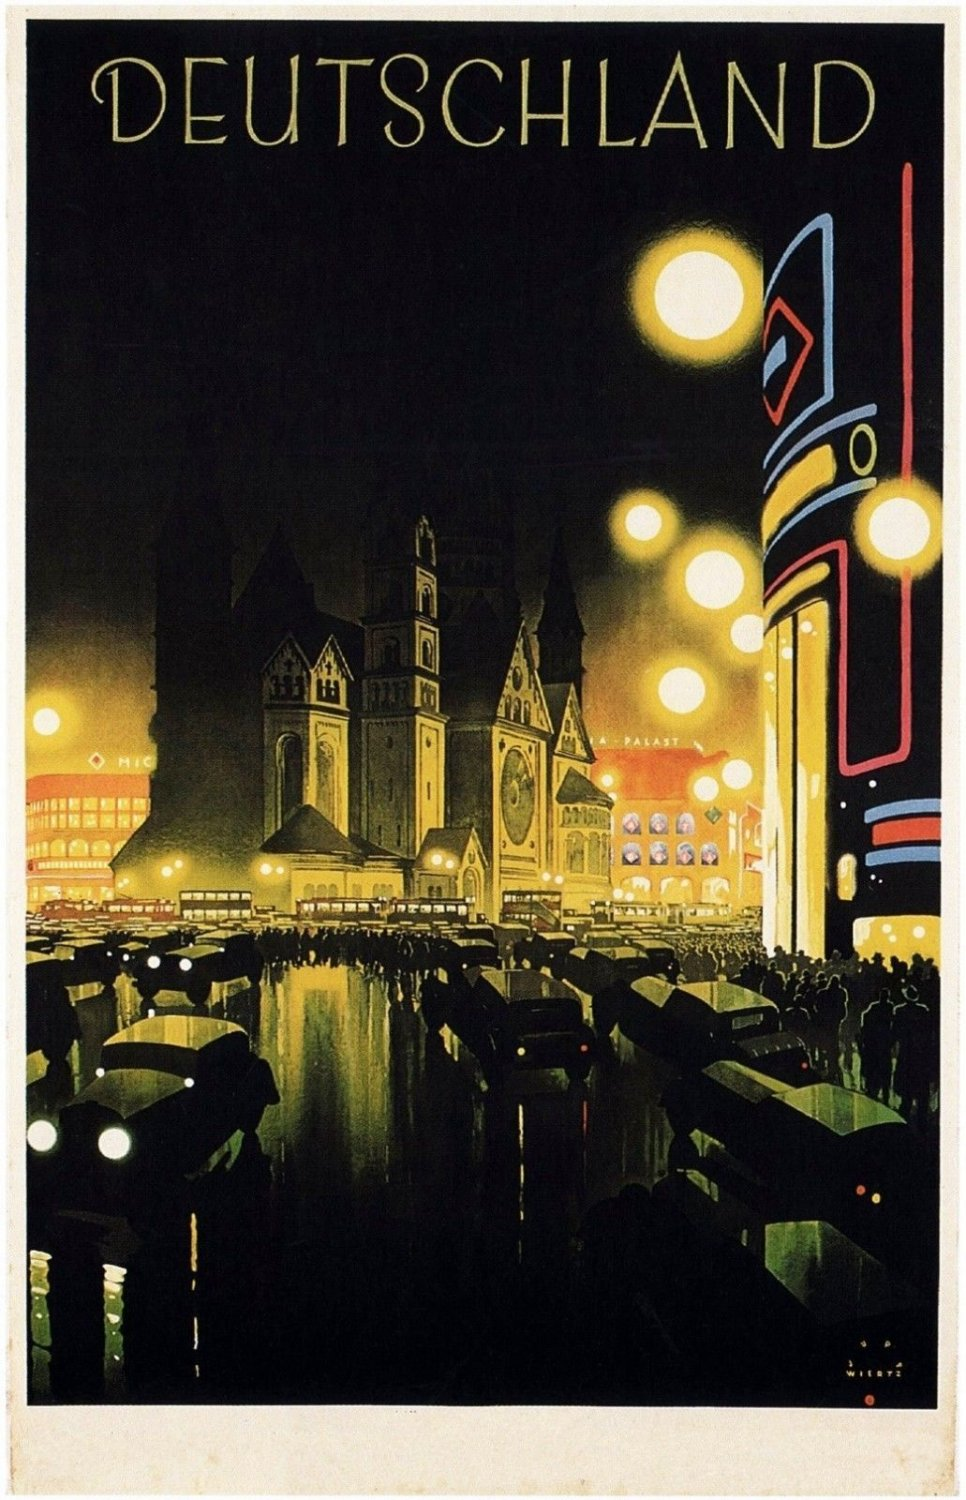 Germany Vintage Travel Art 32x24 Poster Decor